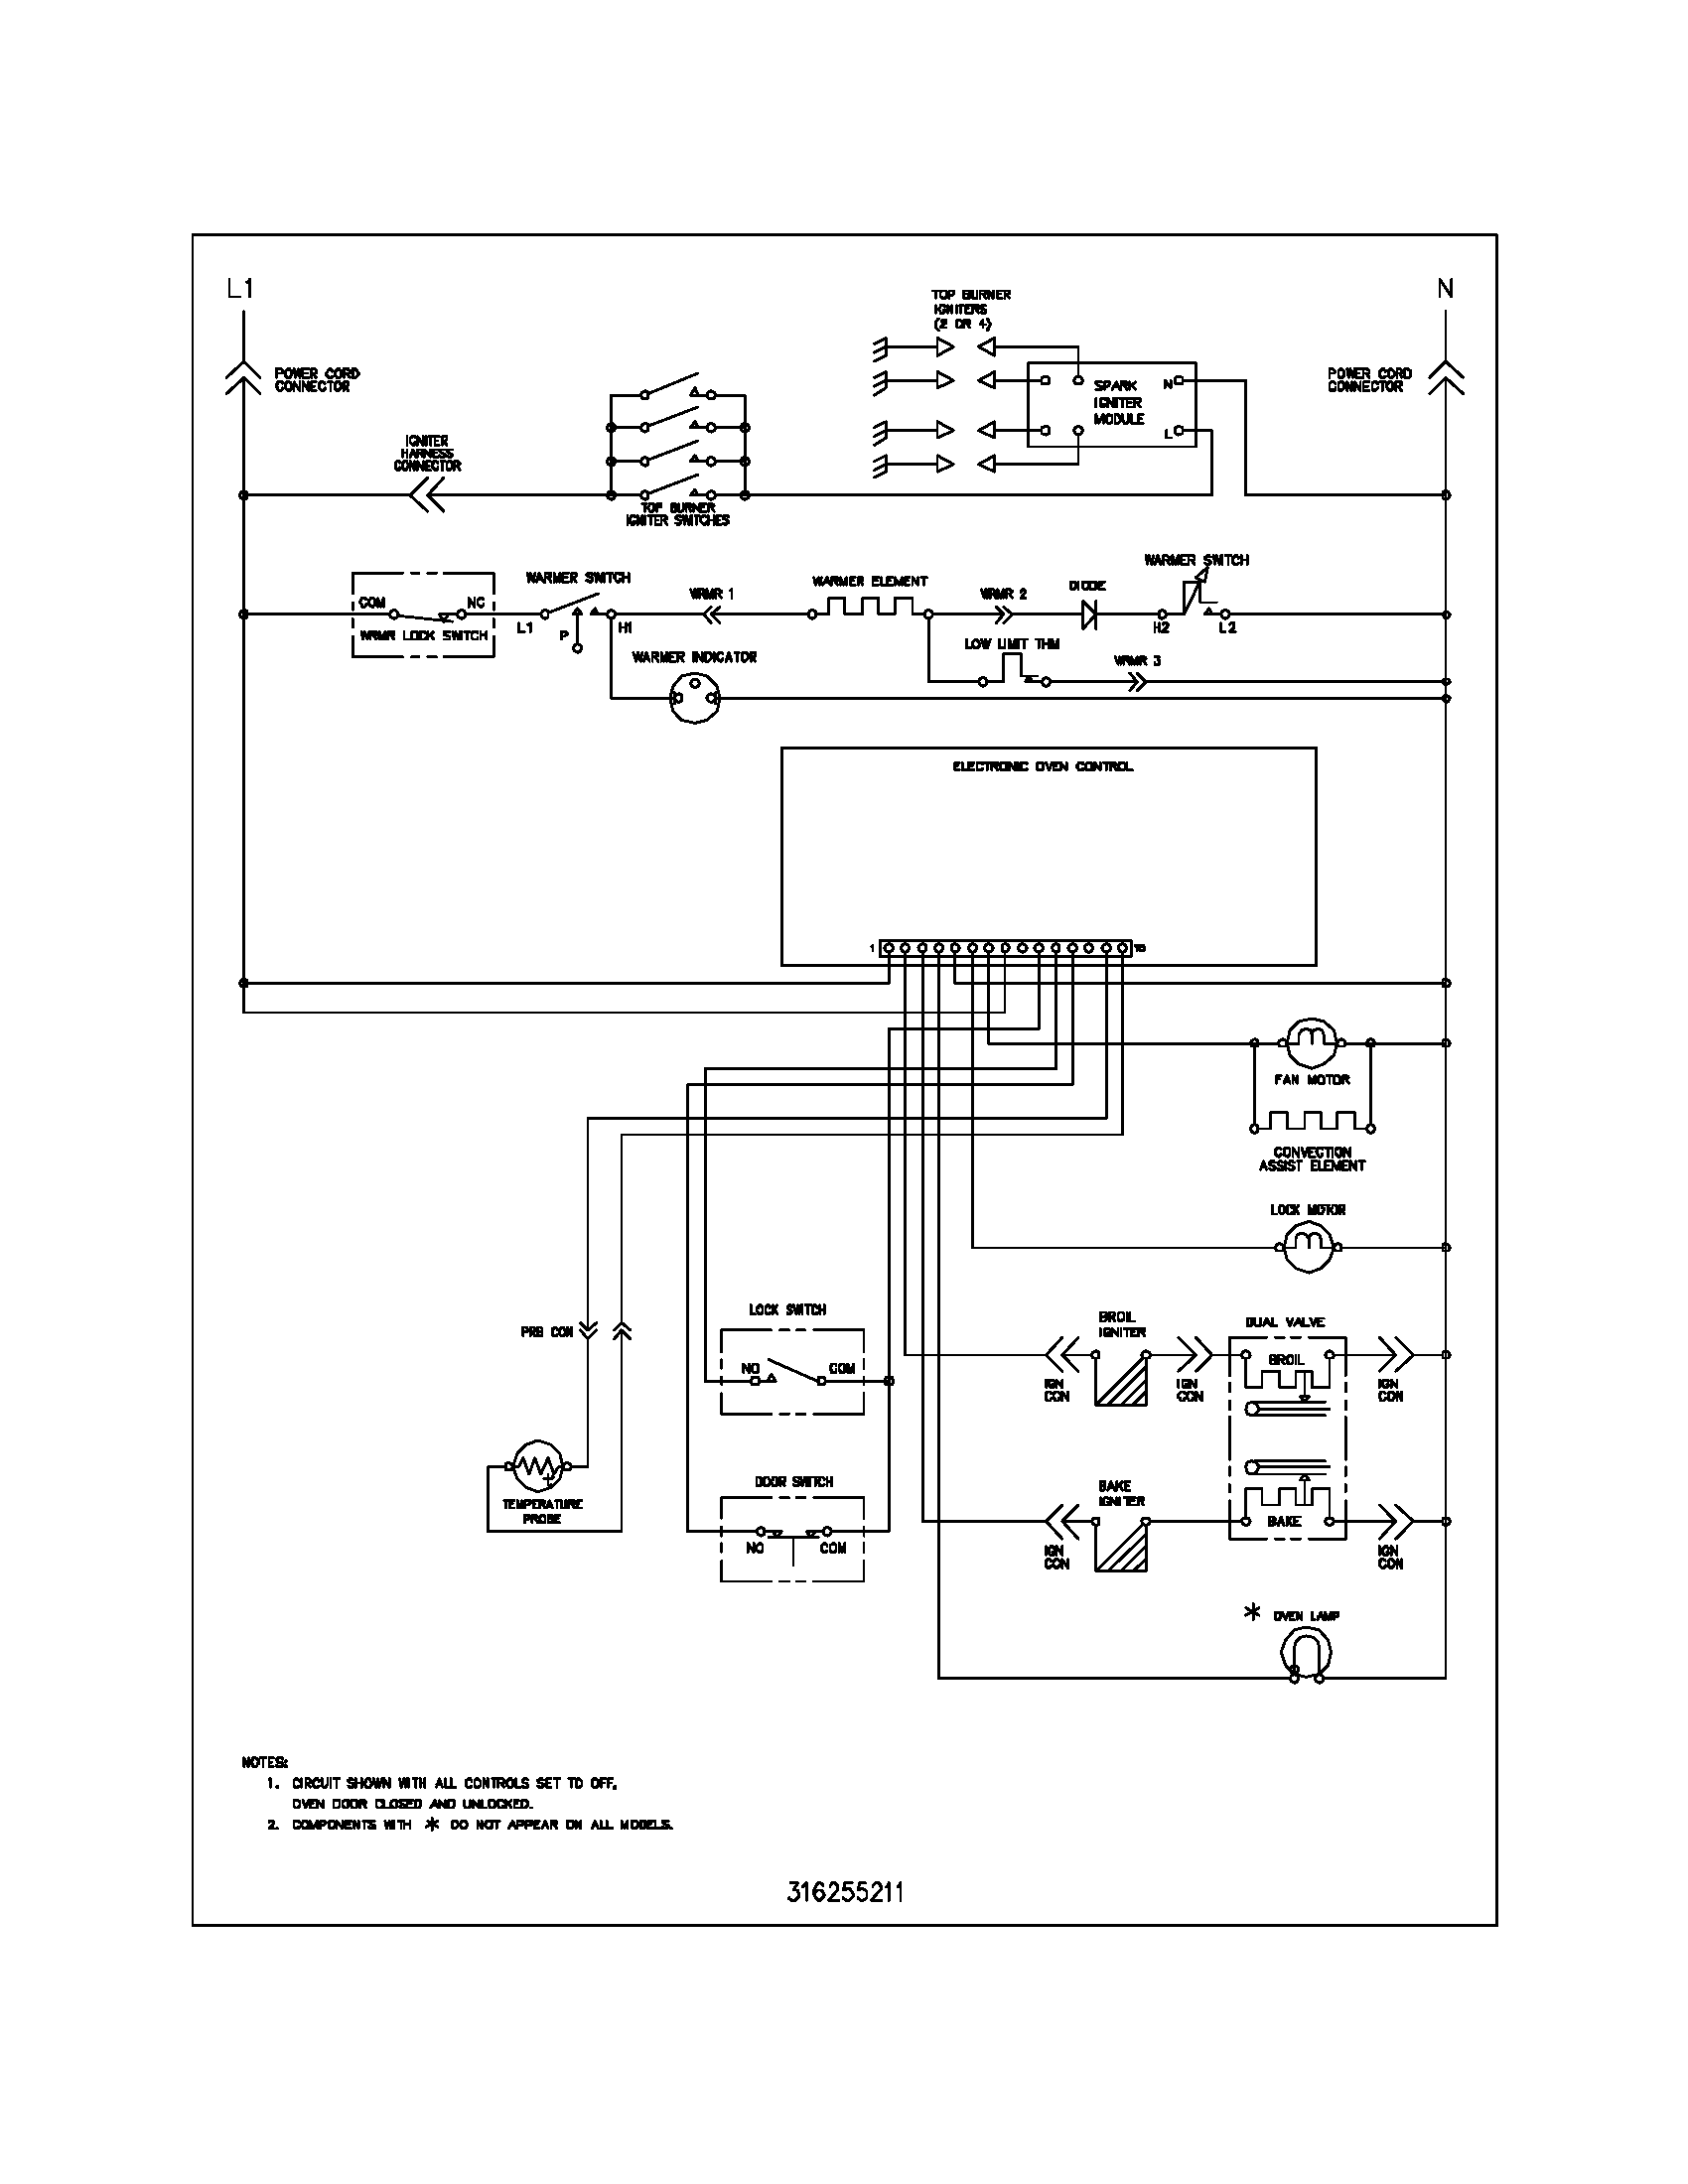 wiring schematic parts frigidaire stove wiring diagram frigidaire washer wiring diagram Frigidaire Oven Wiring Diagram at bakdesigns.co